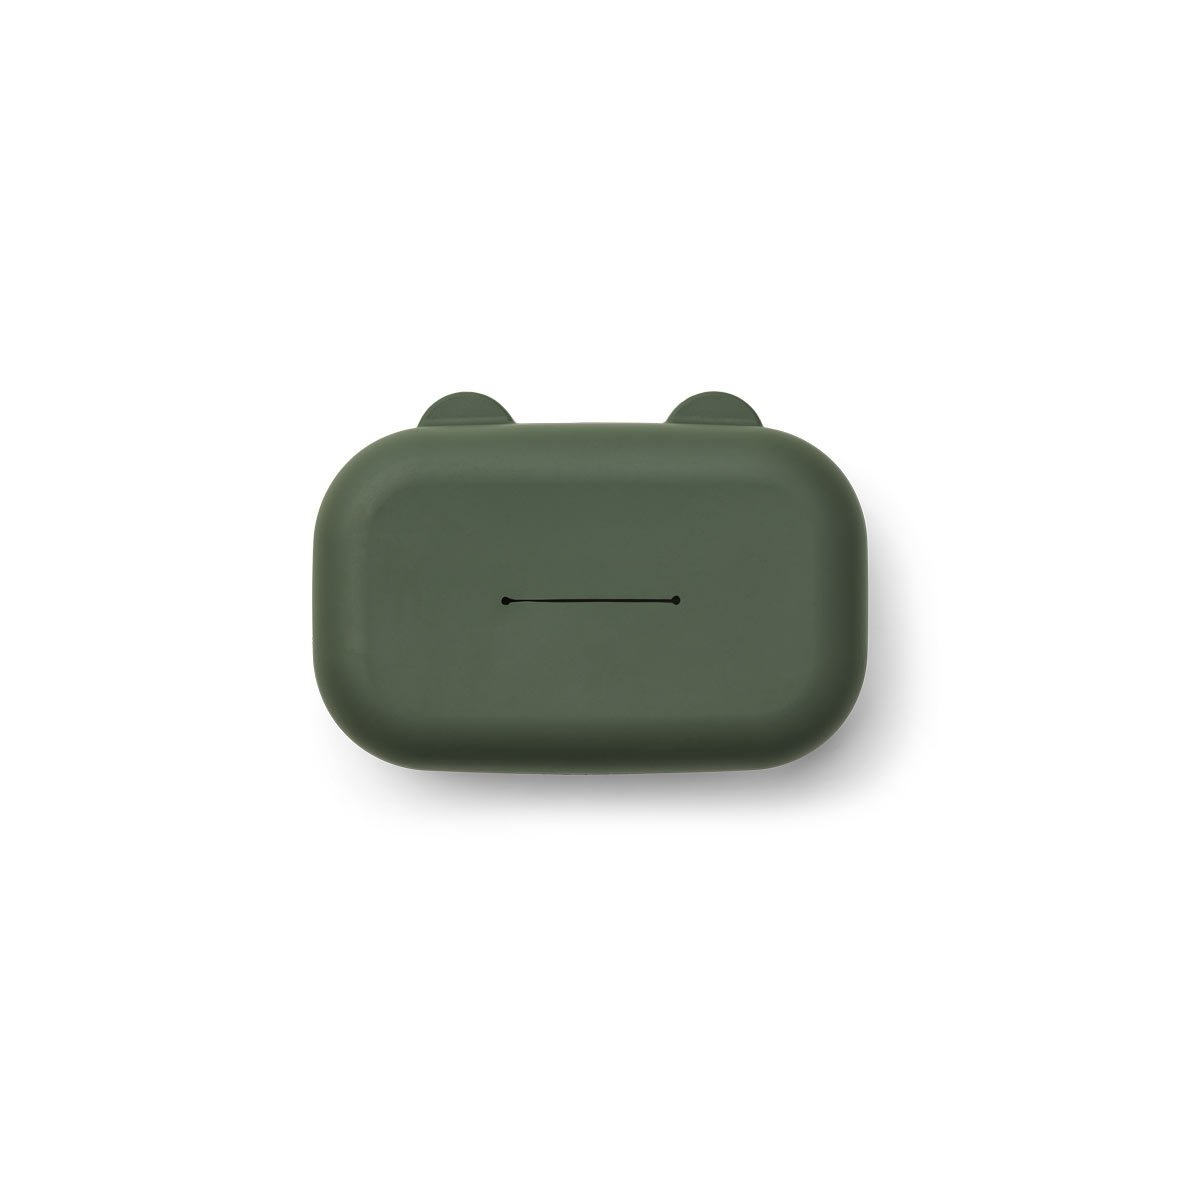 Emi wet wipes cover-4